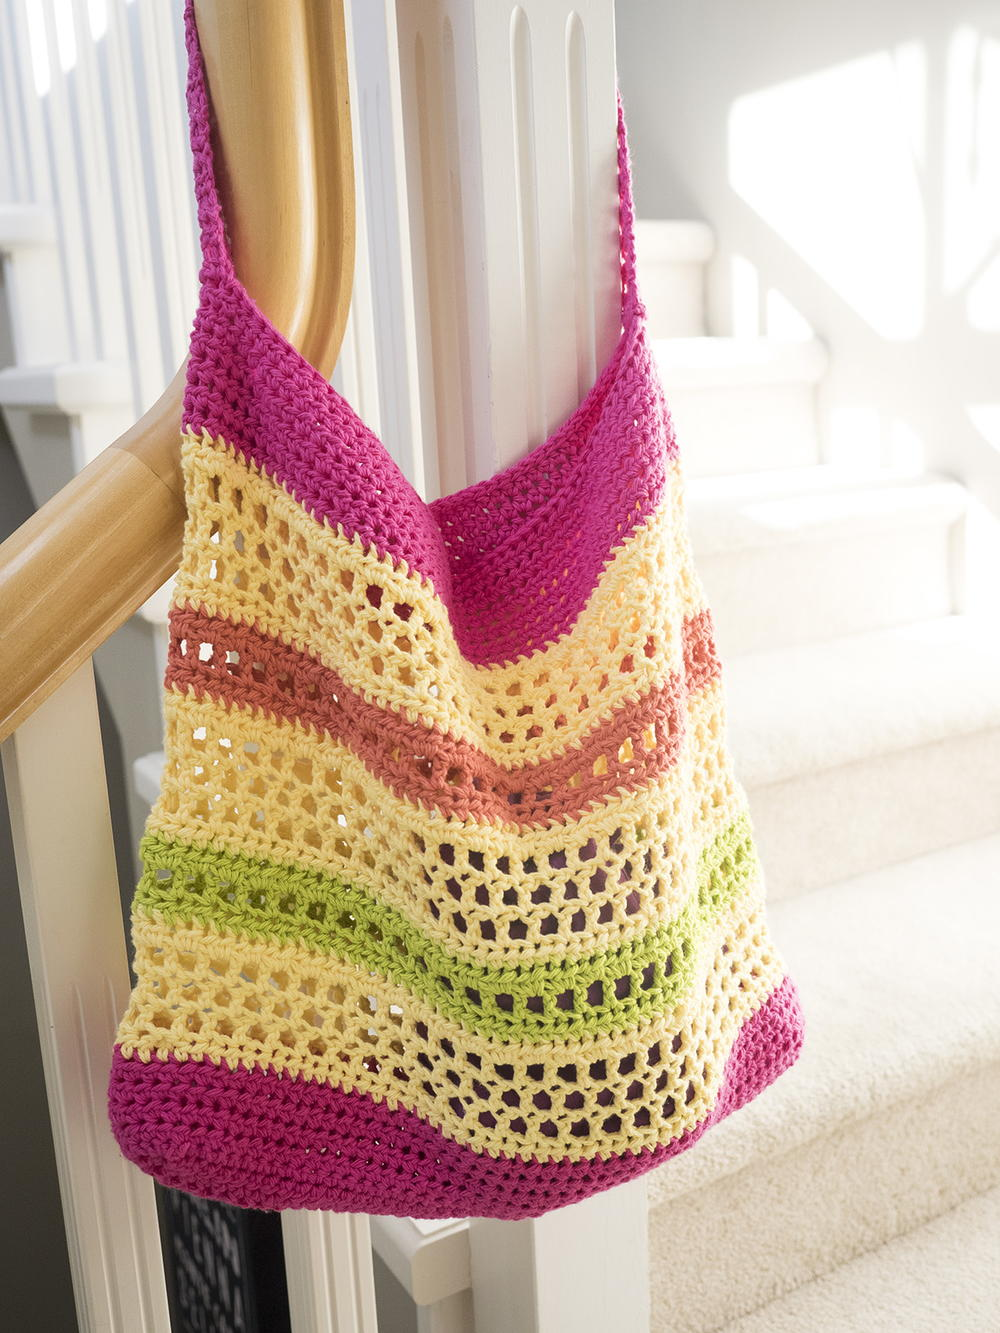 Beach Bag Crochet : Crochet Beach Tote Bag AllFreeCrochet.com